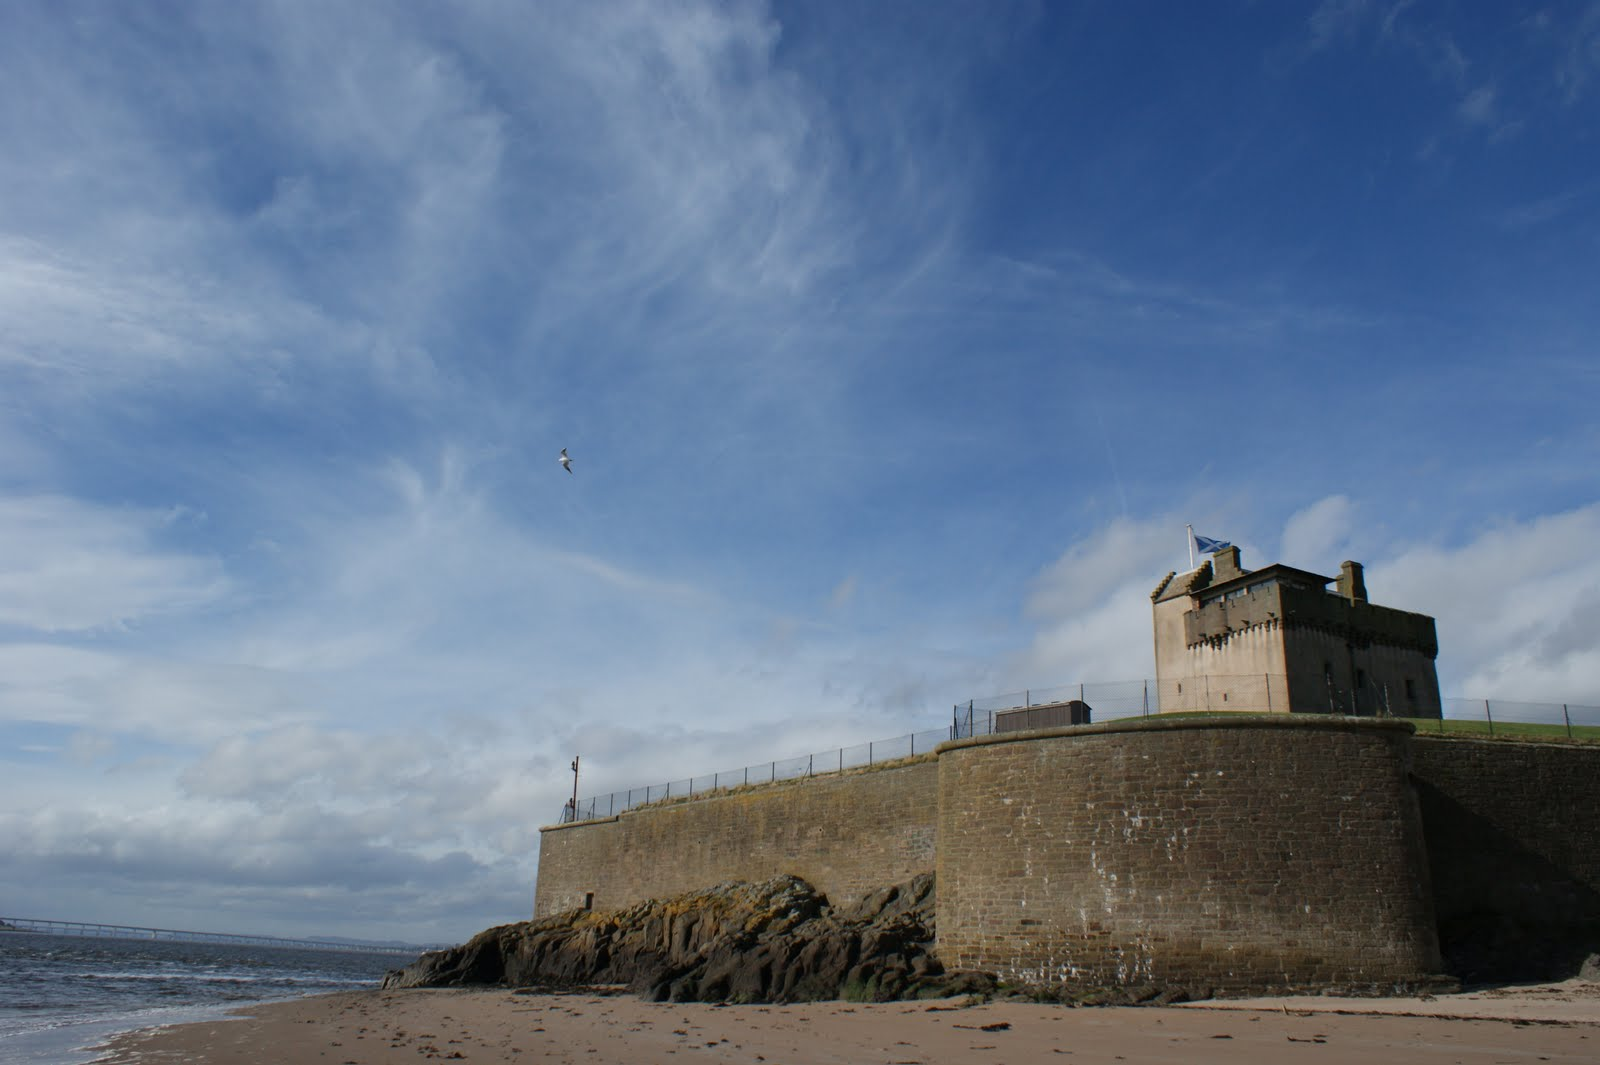 http://2.bp.blogspot.com/_4DzLbV79i7g/TKd2P4mZJtI/AAAAAAAAlOM/gj4Dktry4os/s1600/October+2nd+Photograph+Broughty+Castle+Scotland.jpg